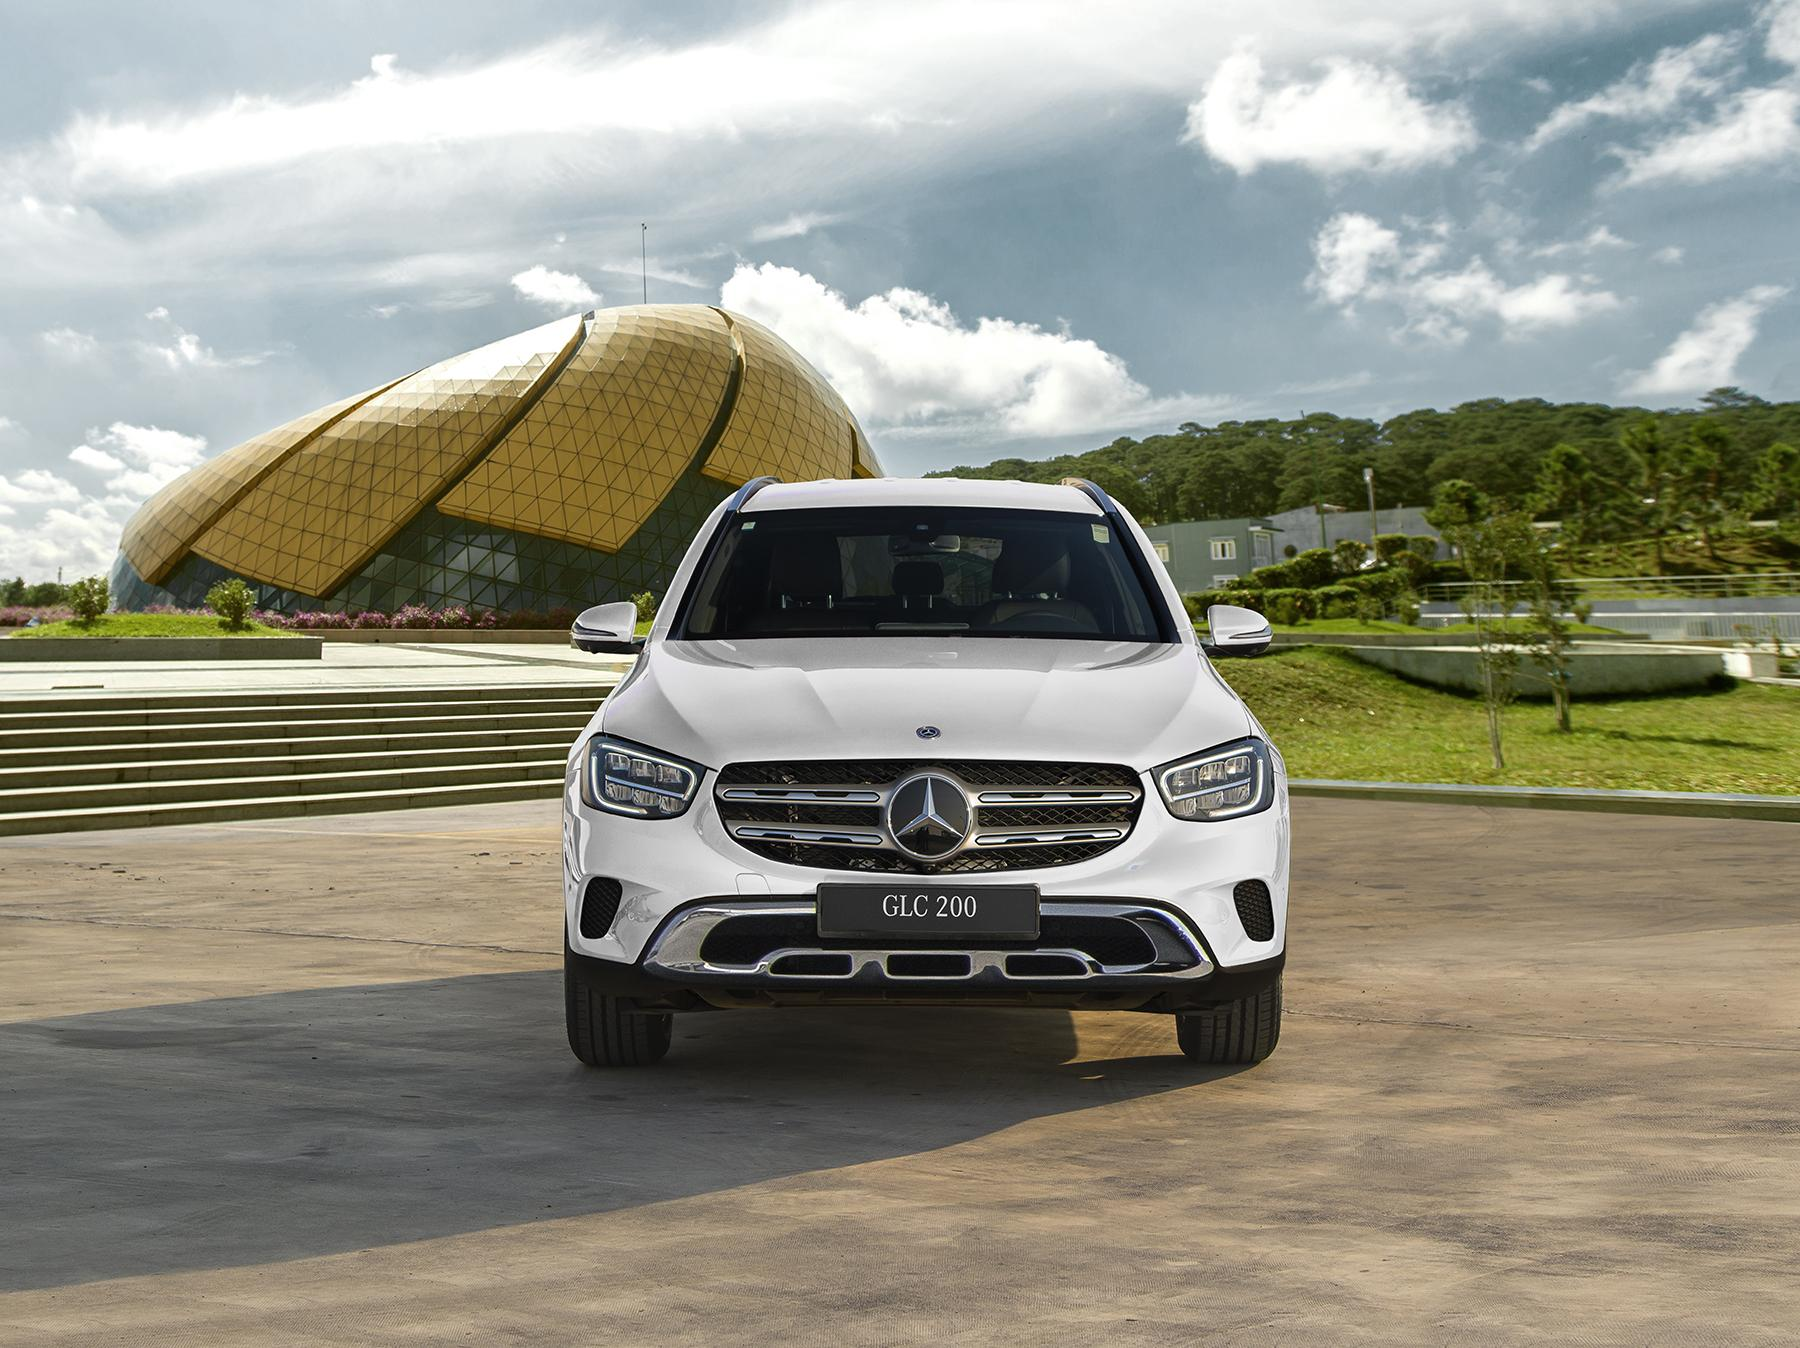 mercedes-glc-200-facelift-2020-noi-that-ngoai-that-mercedeshaxaco.com_.vn